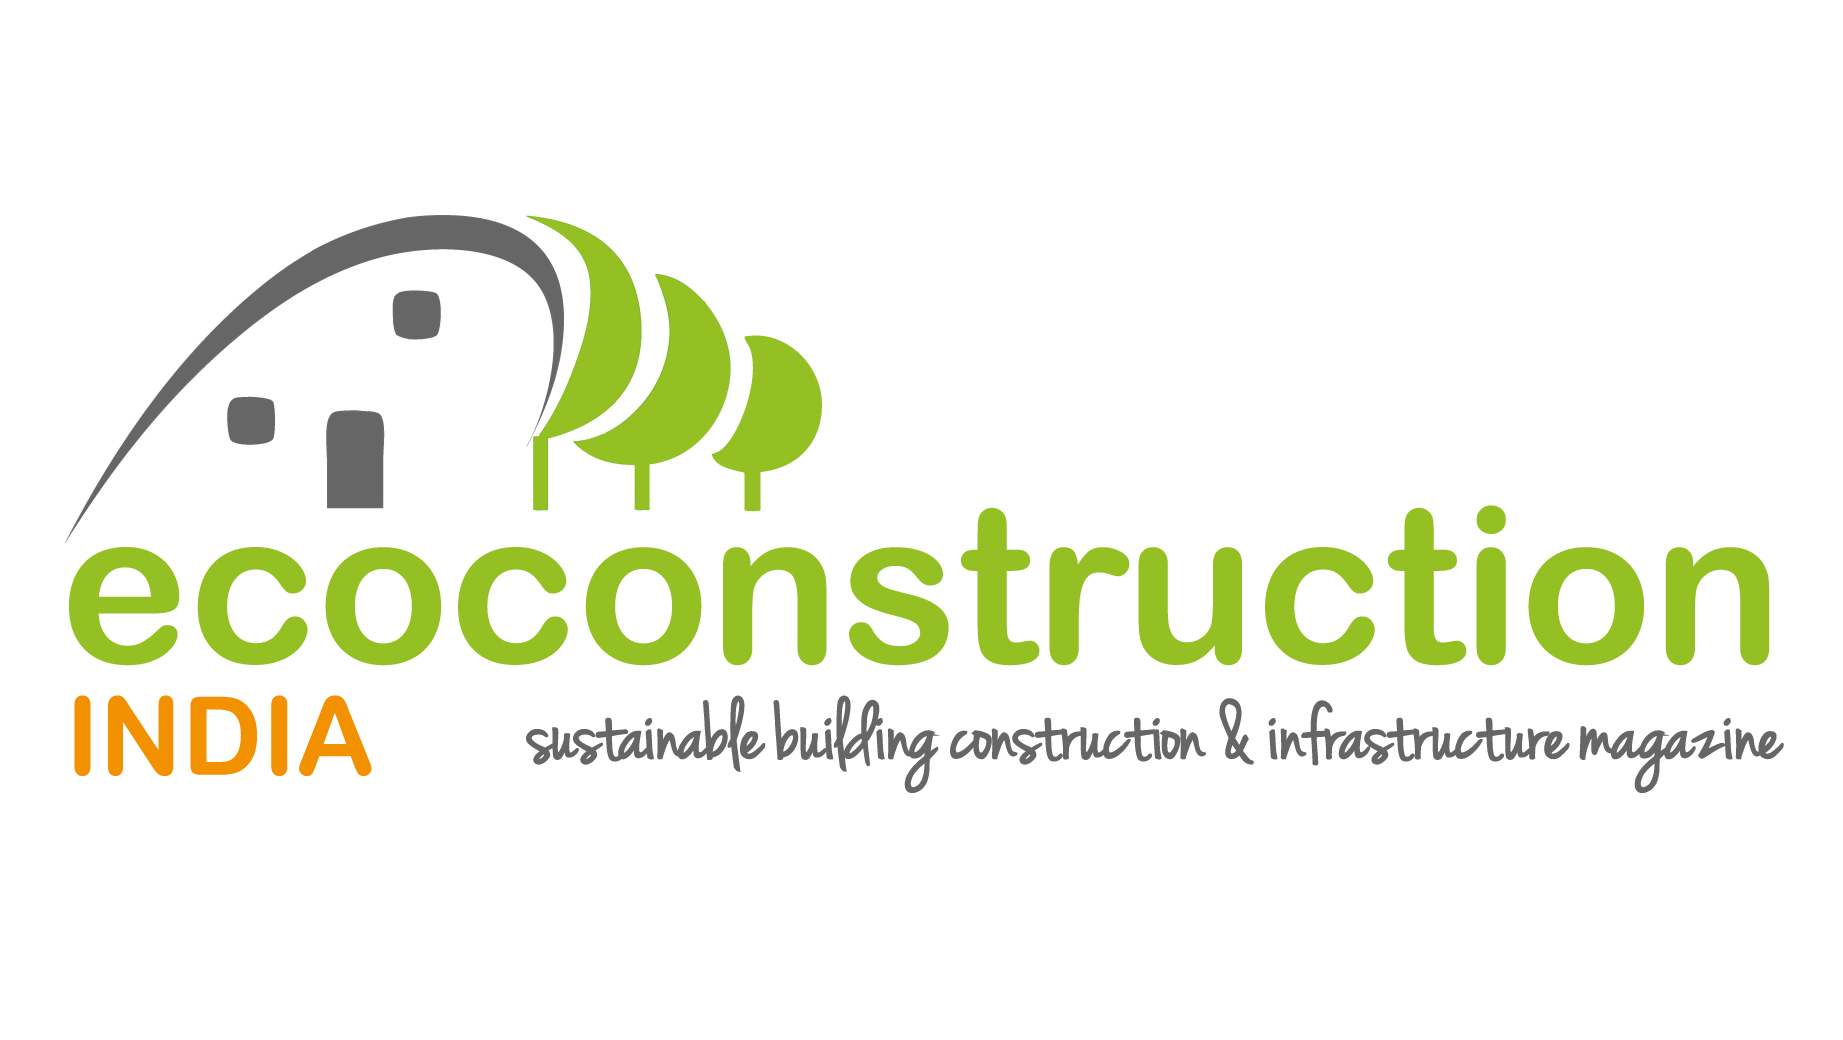 Title: Ecoconstruction India Spring issue